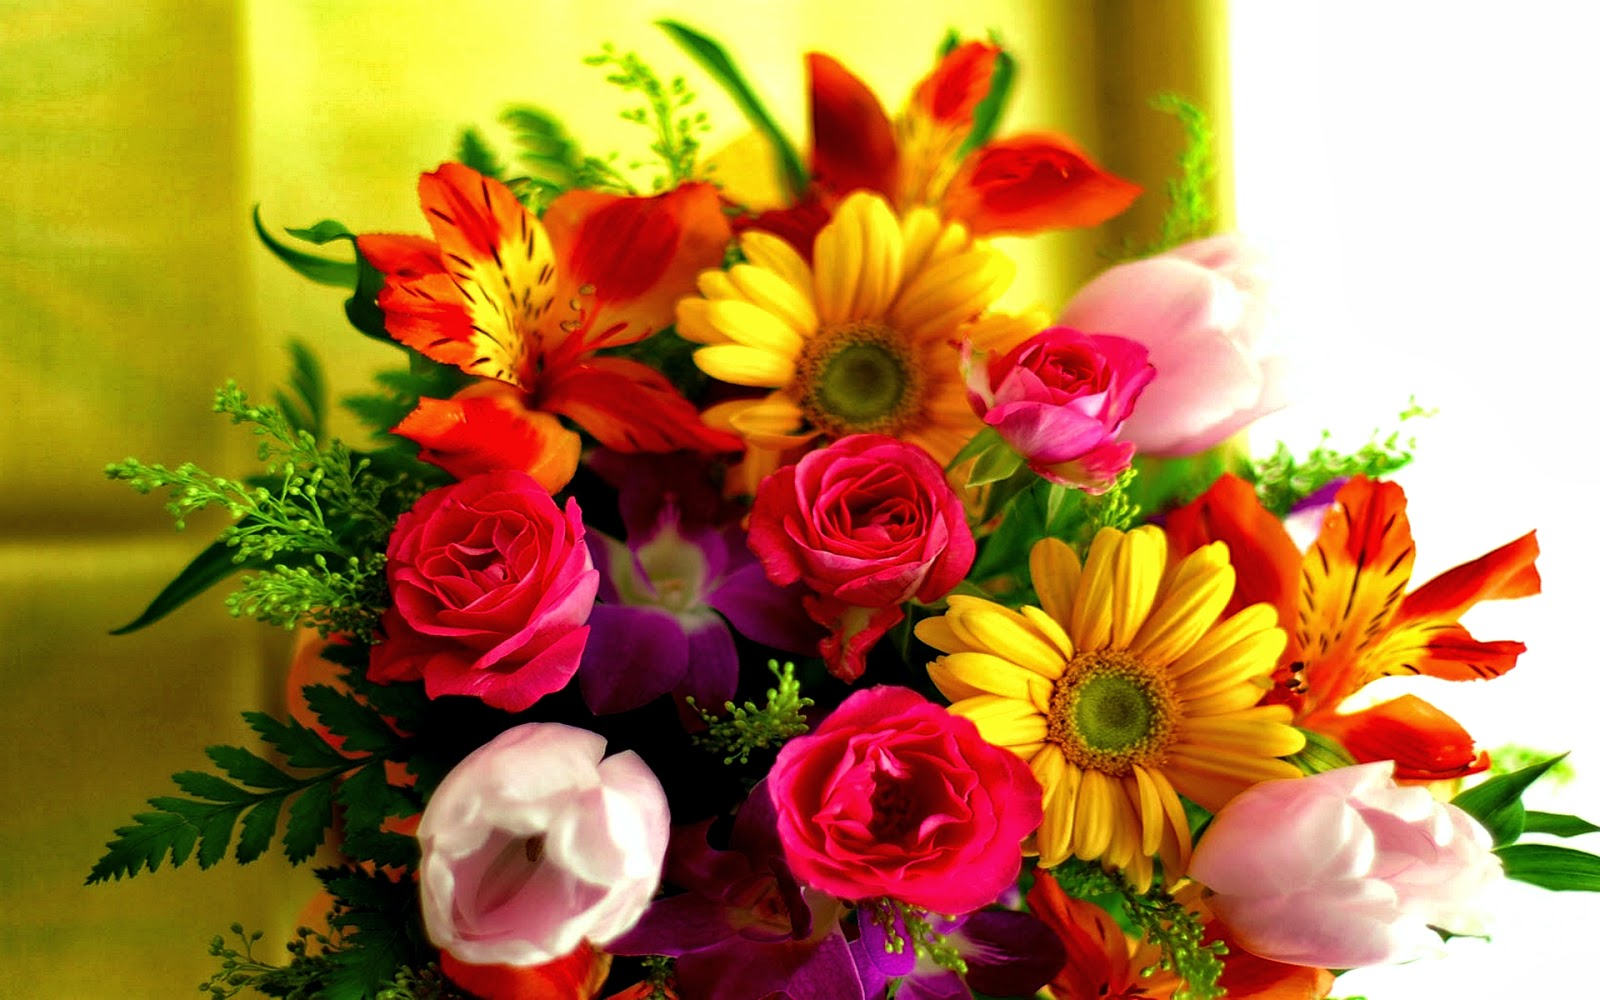 Top 6 Mother's Day Flowers - Mothers Day 2014